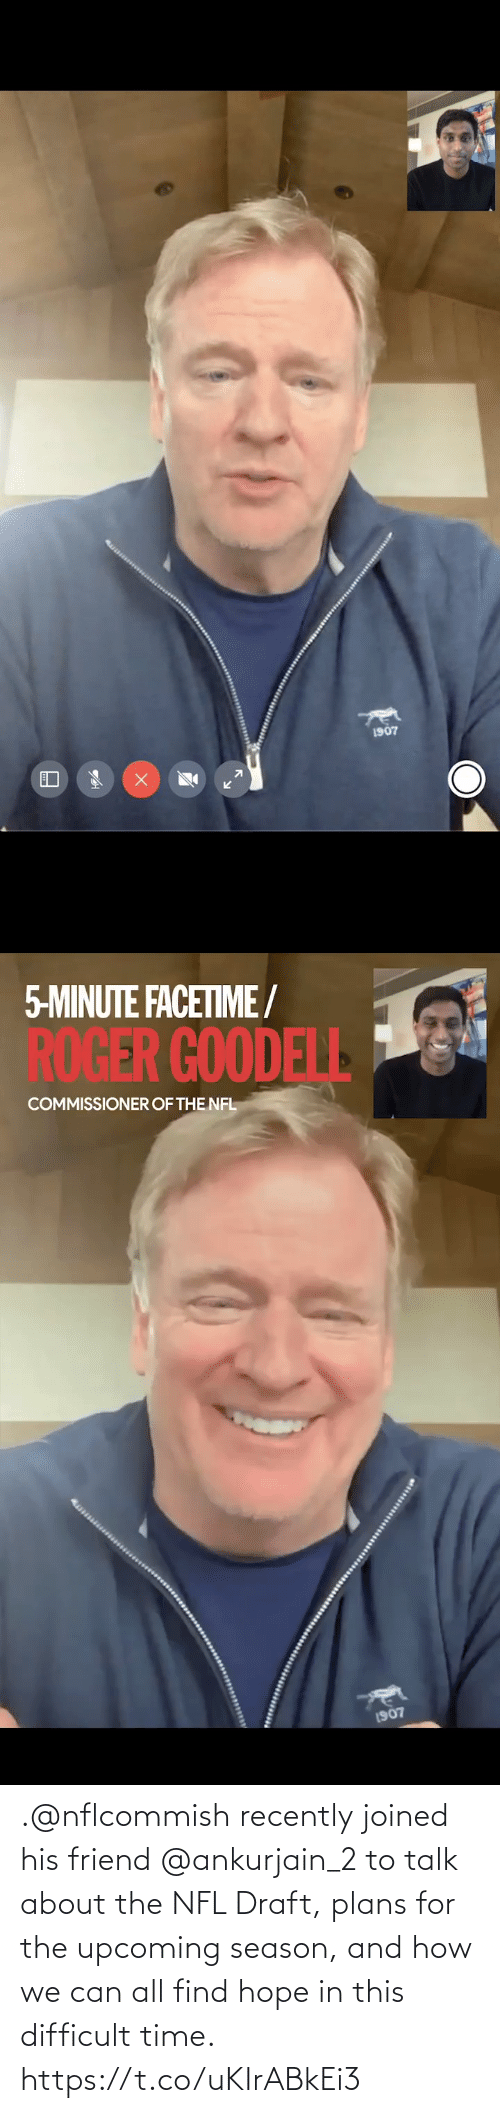 NFL draft: .@nflcommish recently joined his friend @ankurjain_2 to talk about the NFL Draft, plans for the upcoming season, and how we can all find hope in this difficult time. https://t.co/uKIrABkEi3